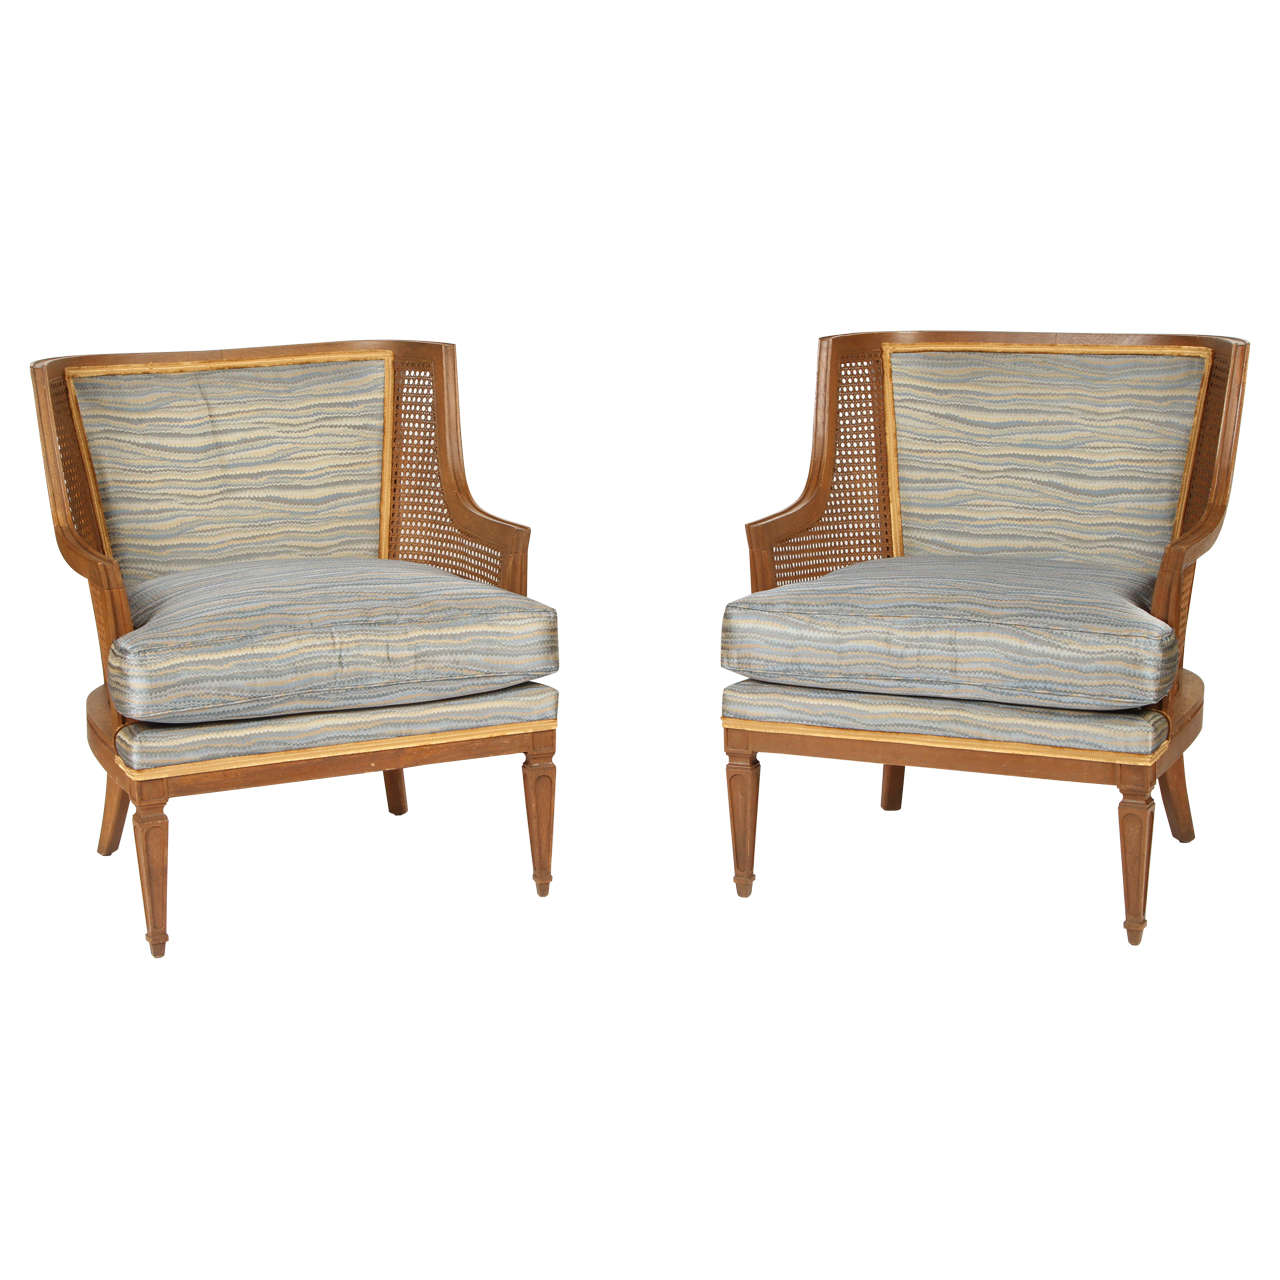 Pair of Caned French 1940s Armchairs For Sale